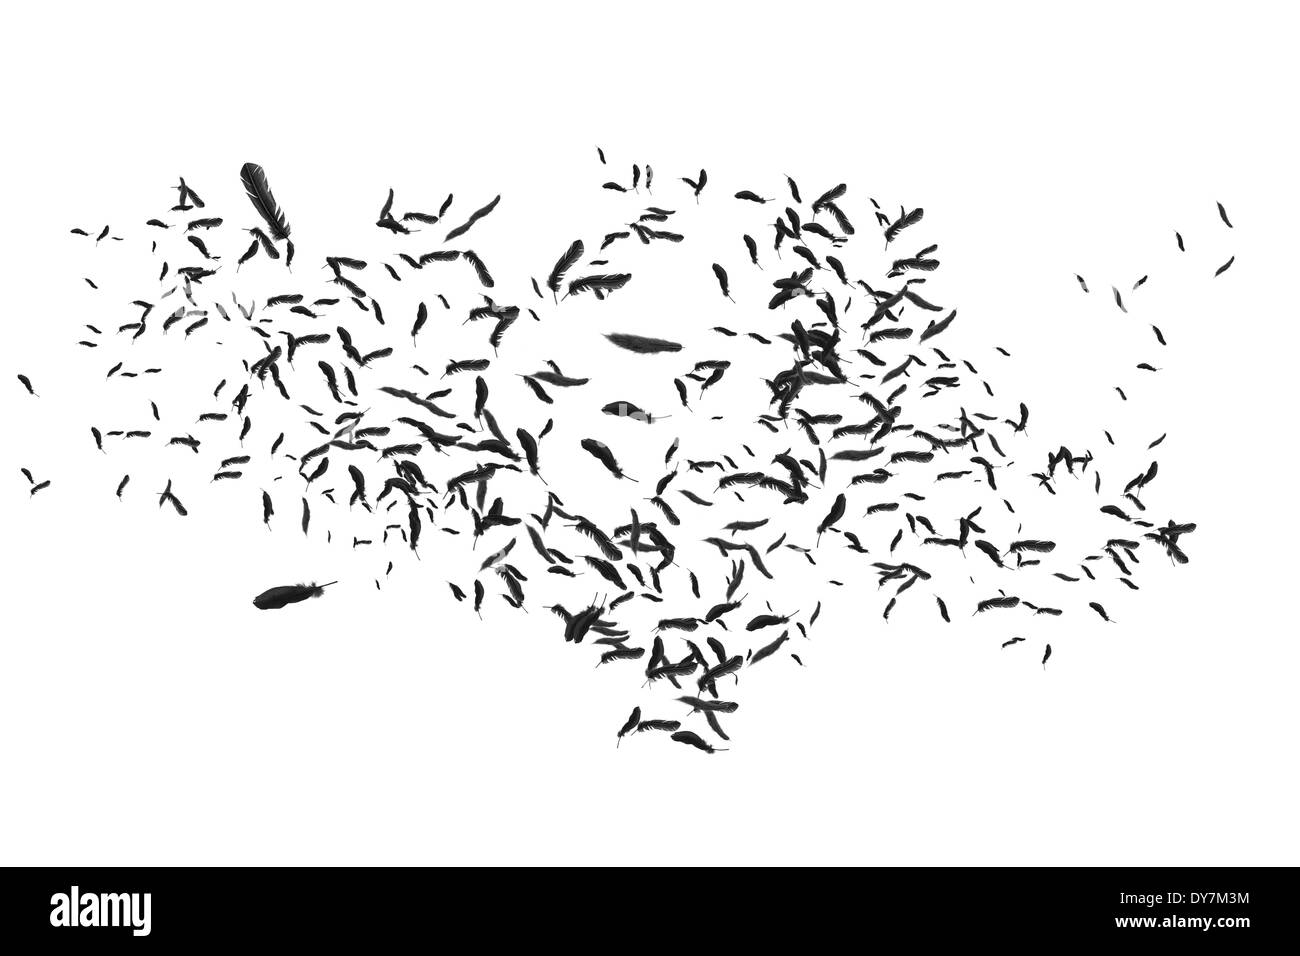 Many feathers blowing in the breeze - Stock Image